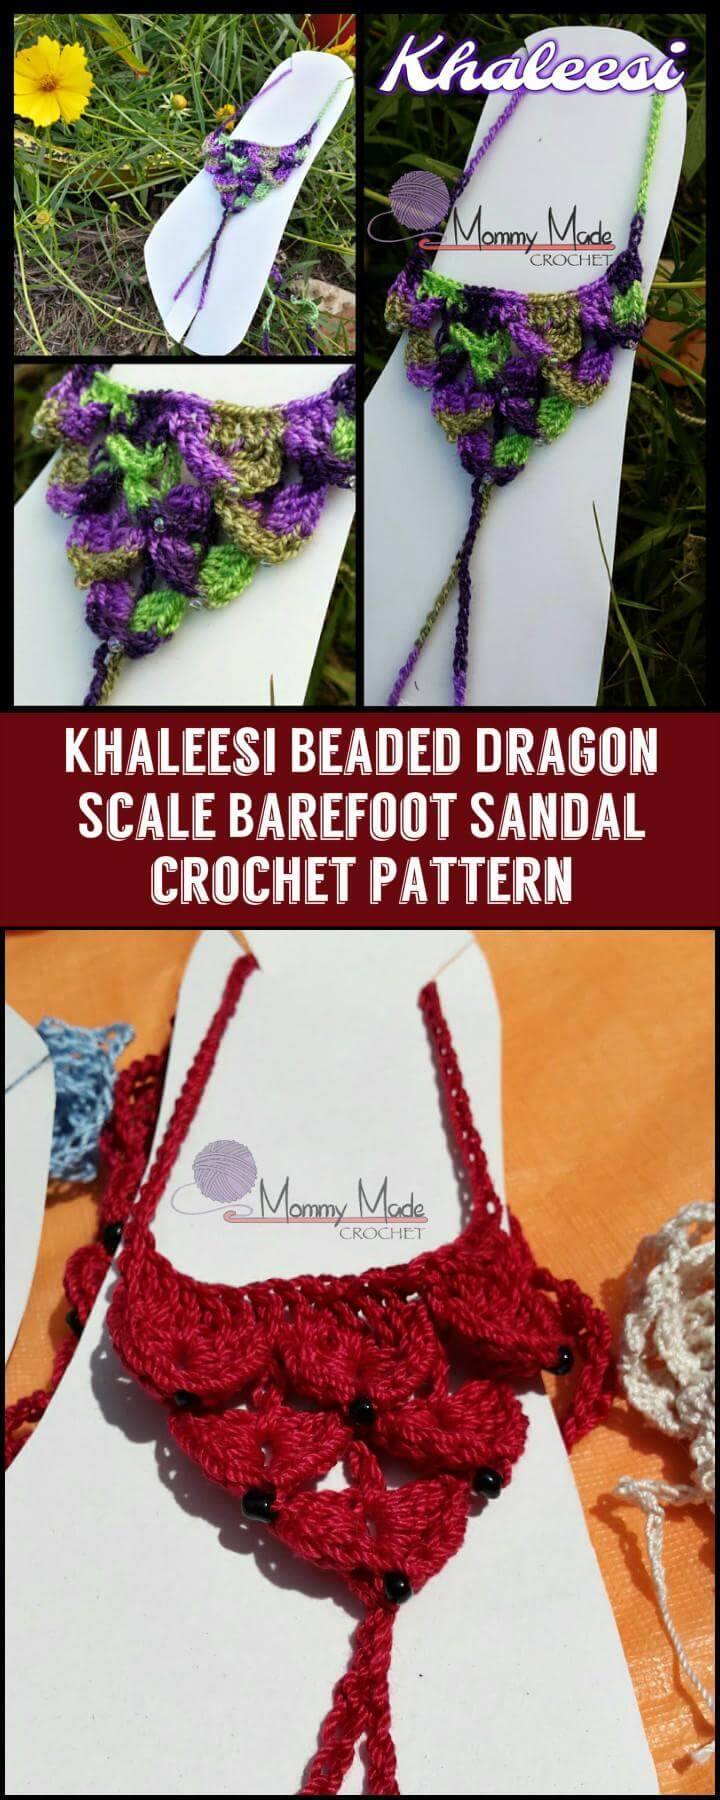 Khaleesi Beaded Dragon Scale Barefoot Sandal crochet pattern